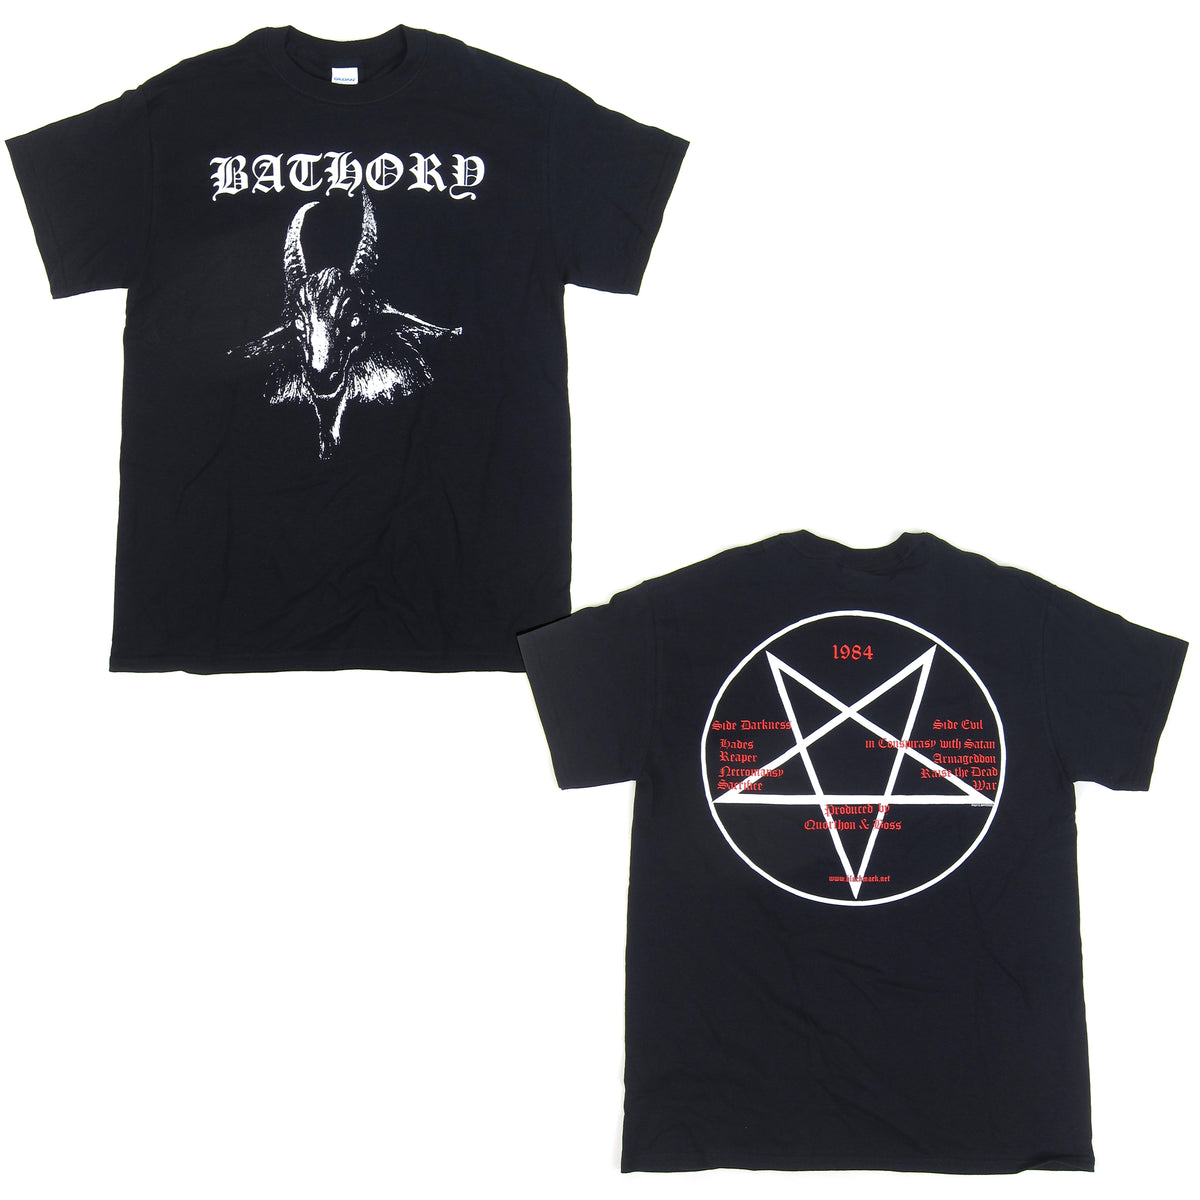 Bathory: Goat Shirt - Black